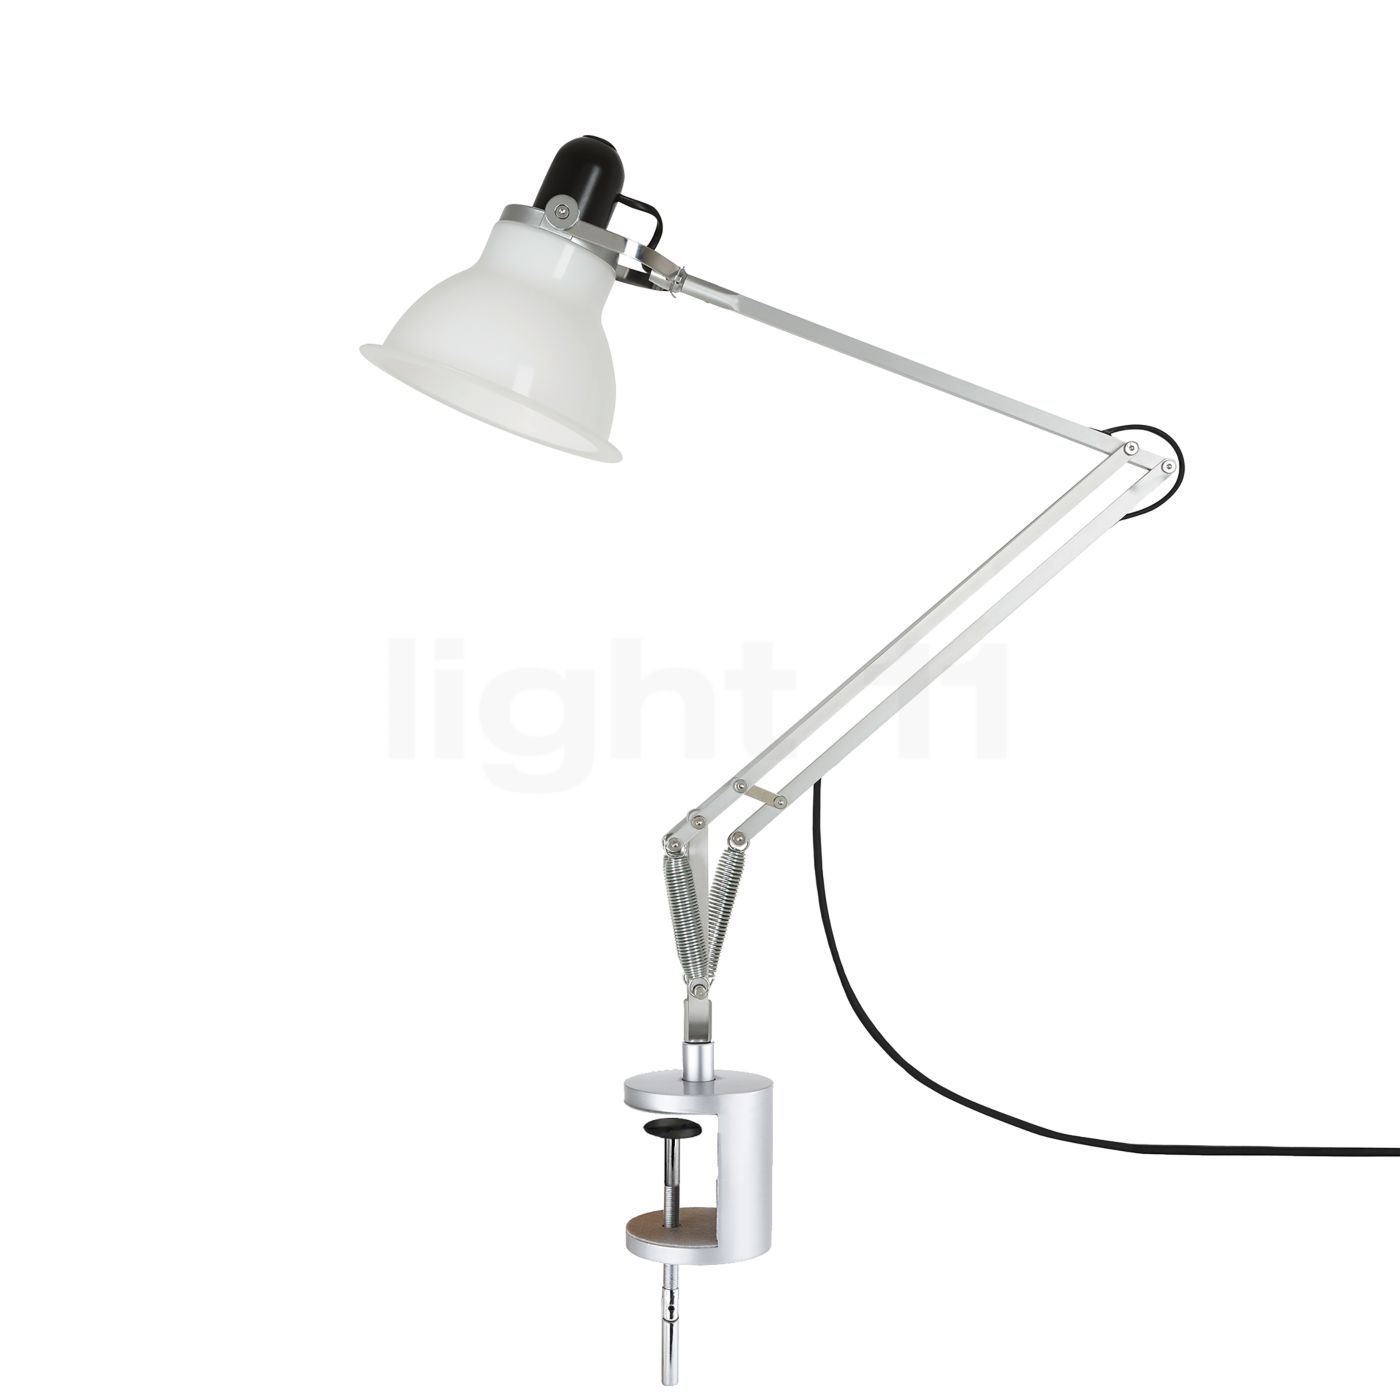 anglepoise type 1228 lampe de bureau avec pince de serrage. Black Bedroom Furniture Sets. Home Design Ideas